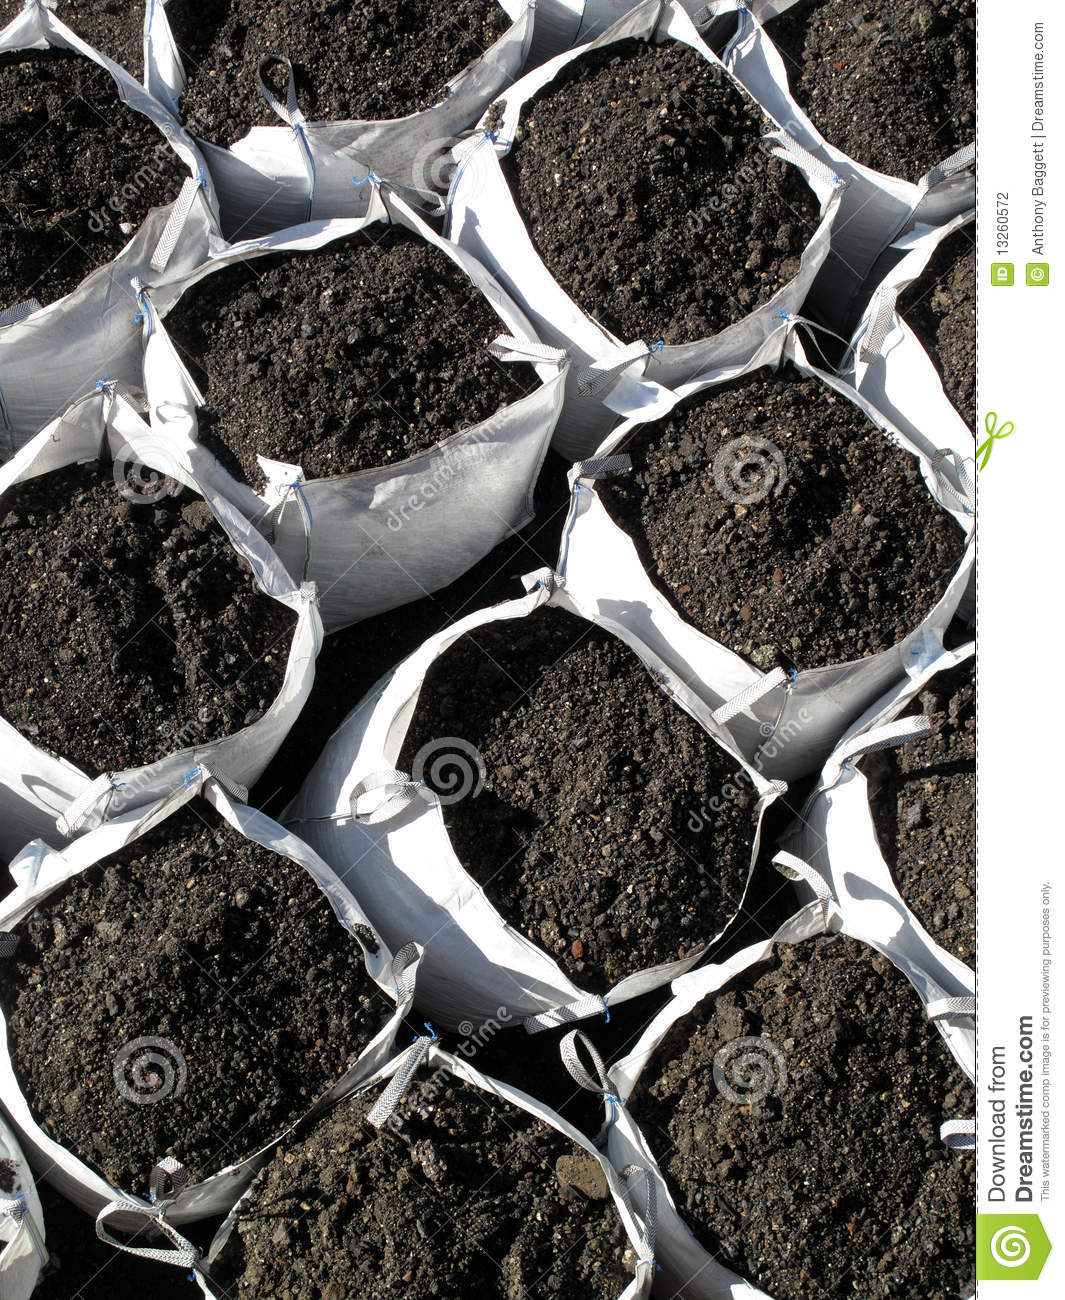 Bags of topsoil stock photography image 13260572 for Bags of topsoil